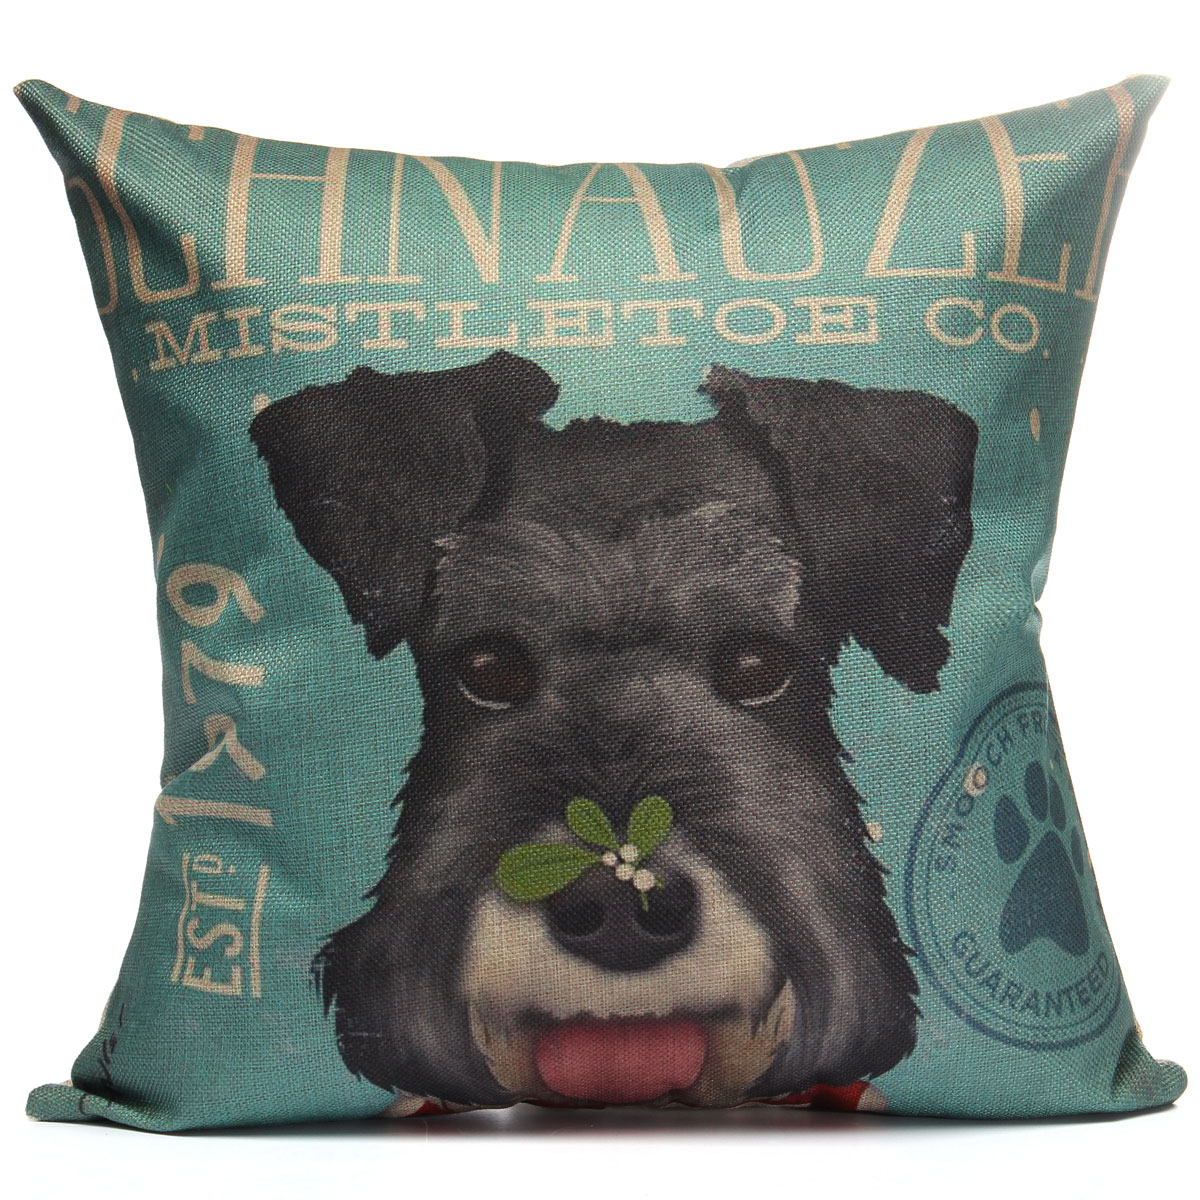 Decorative Pillow With Dog : Cotton Linen Animal Dog Cat Pillow Case Throw Cushion Cover Home Sofa Car Decor eBay